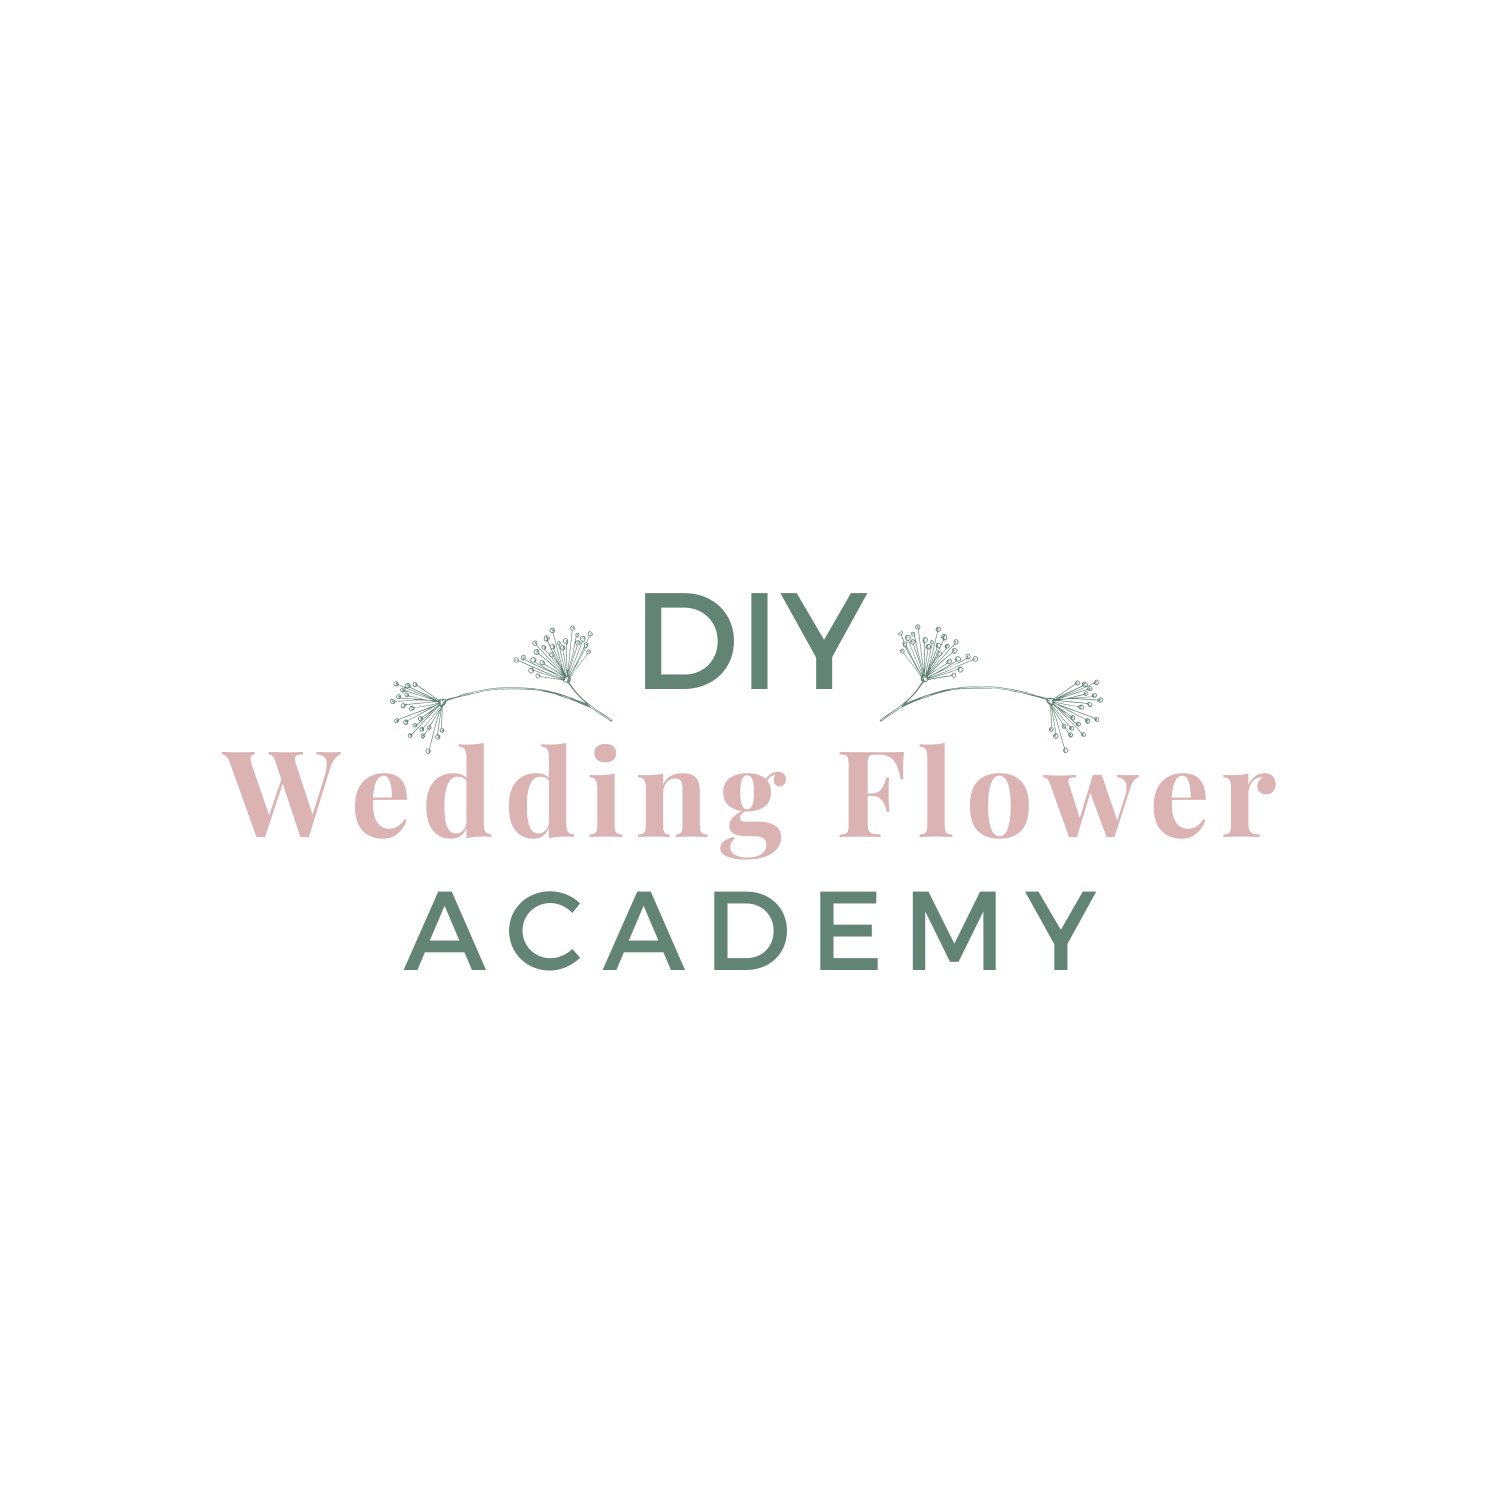 DIY Wedding Flower Academy